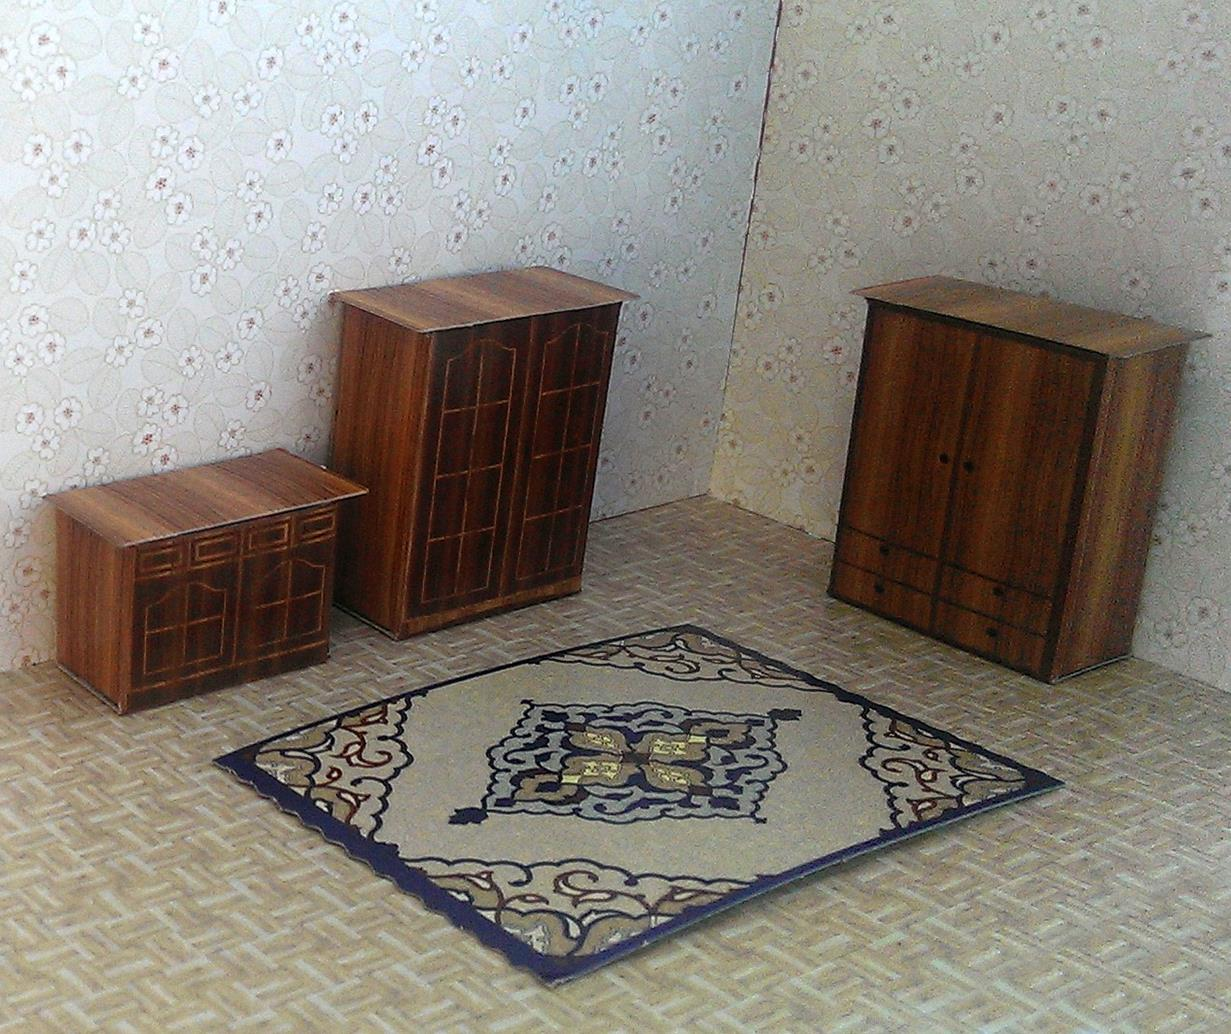 Self Assembly  Wardrobe, Chest of Drawers with wood pattern & Printed Carpet Maquette